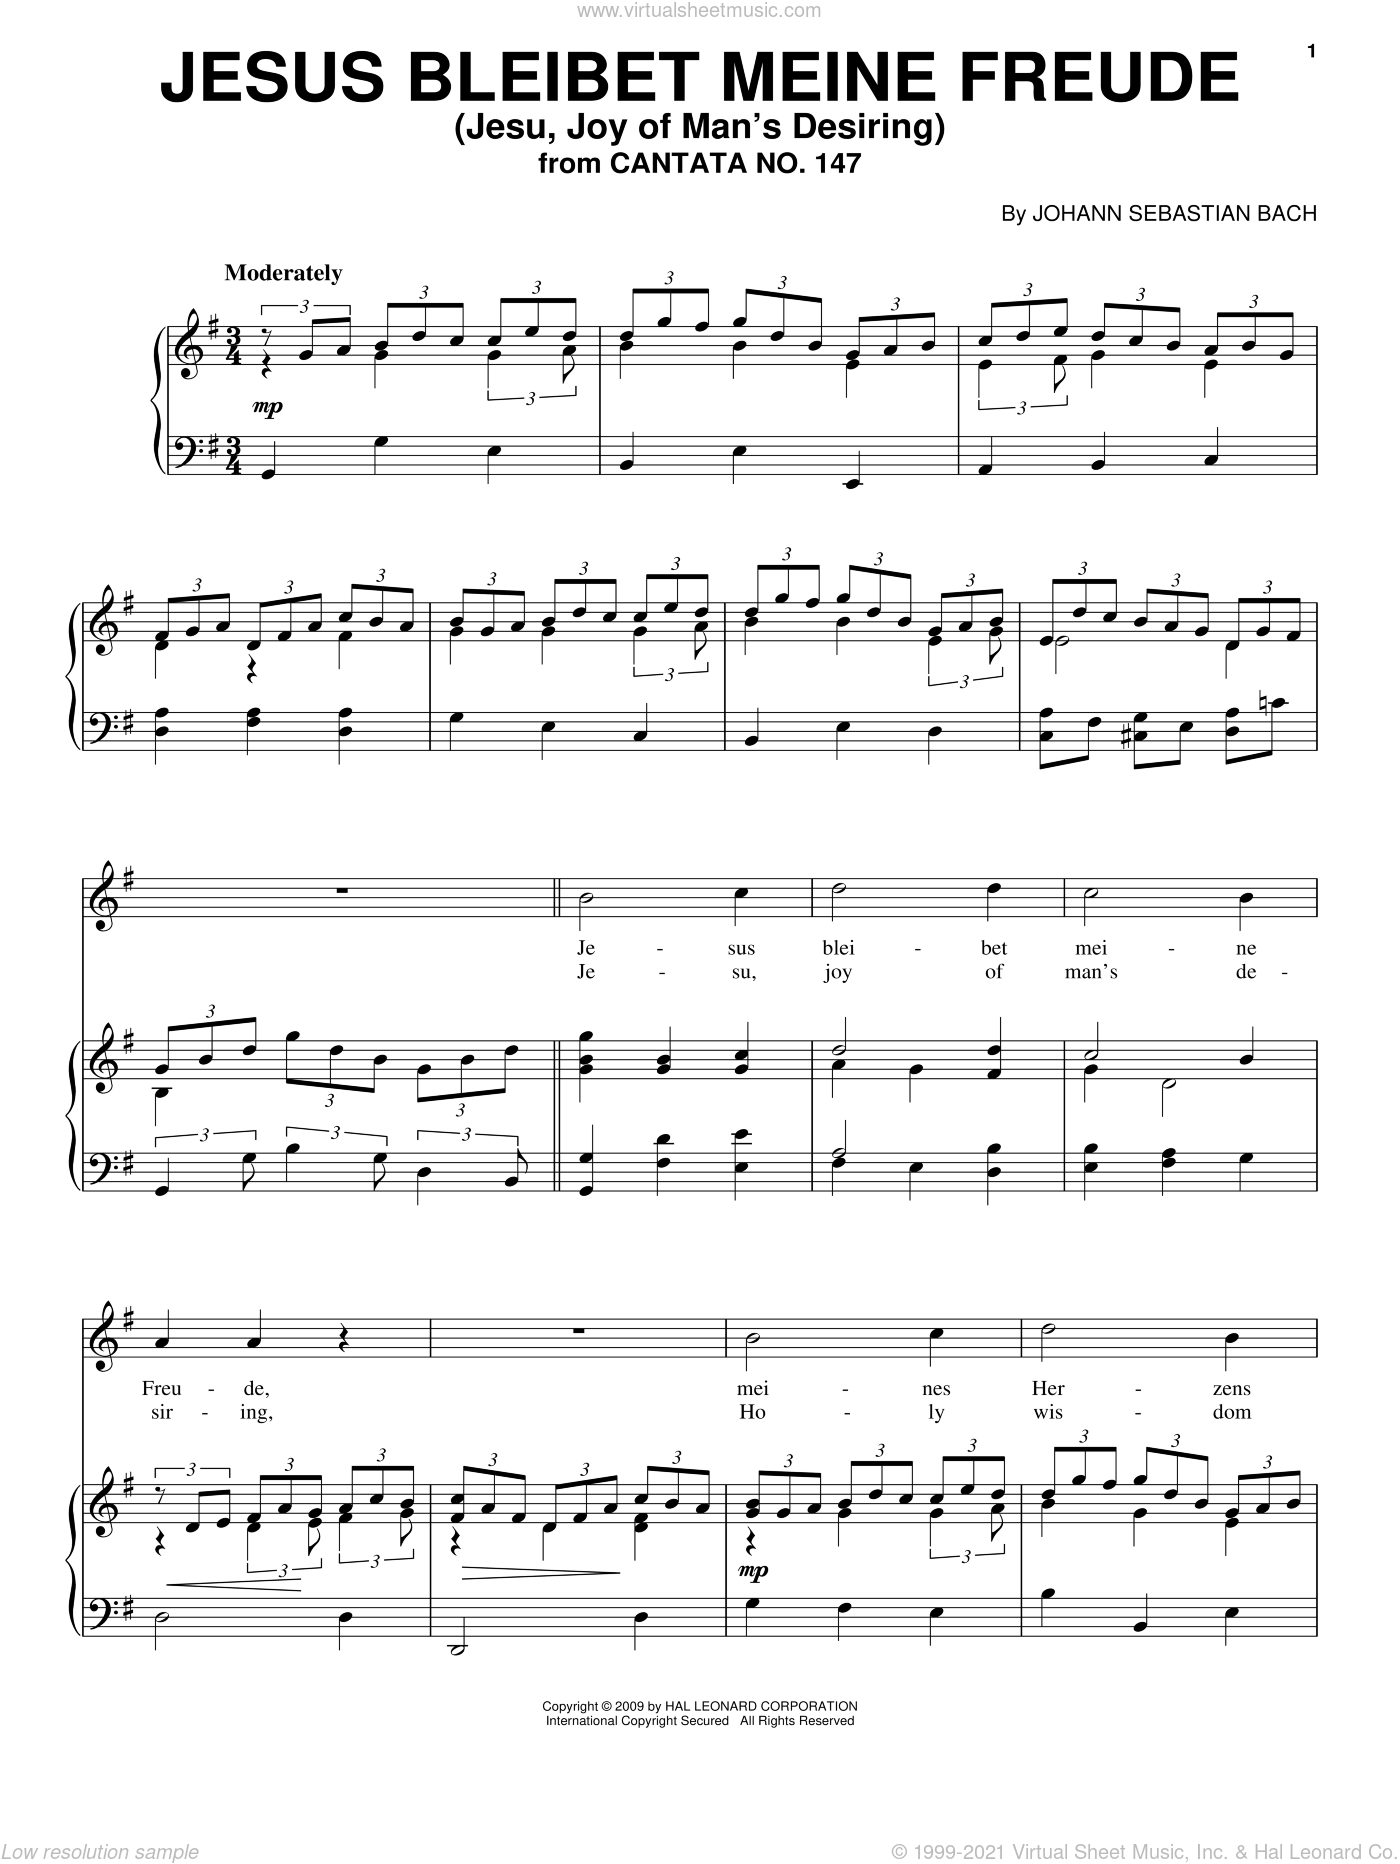 Jesus Bleibet Meine Freude sheet music for voice, piano or guitar by Johann Sebastian Bach